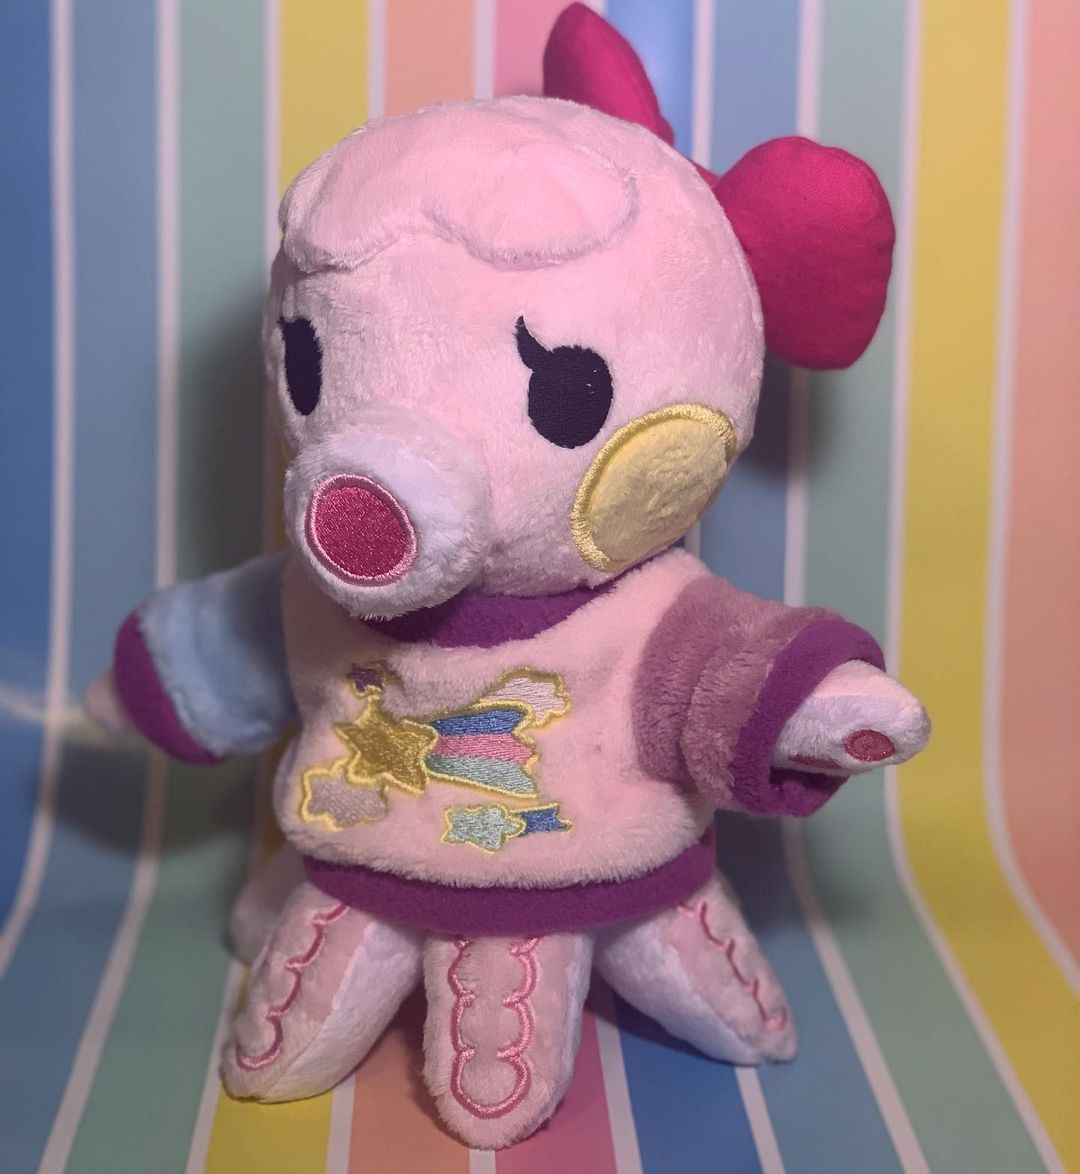 And some of her other angles 💕 #marina#acnh#animalcrossing#nintendo#cute#pastel#plush#plushiesofinstagram#customplush#sewing#seamstress#crafts#art#newhorizons#villager#animalcrossingnewhorizons#octopus#pink#aesthetic